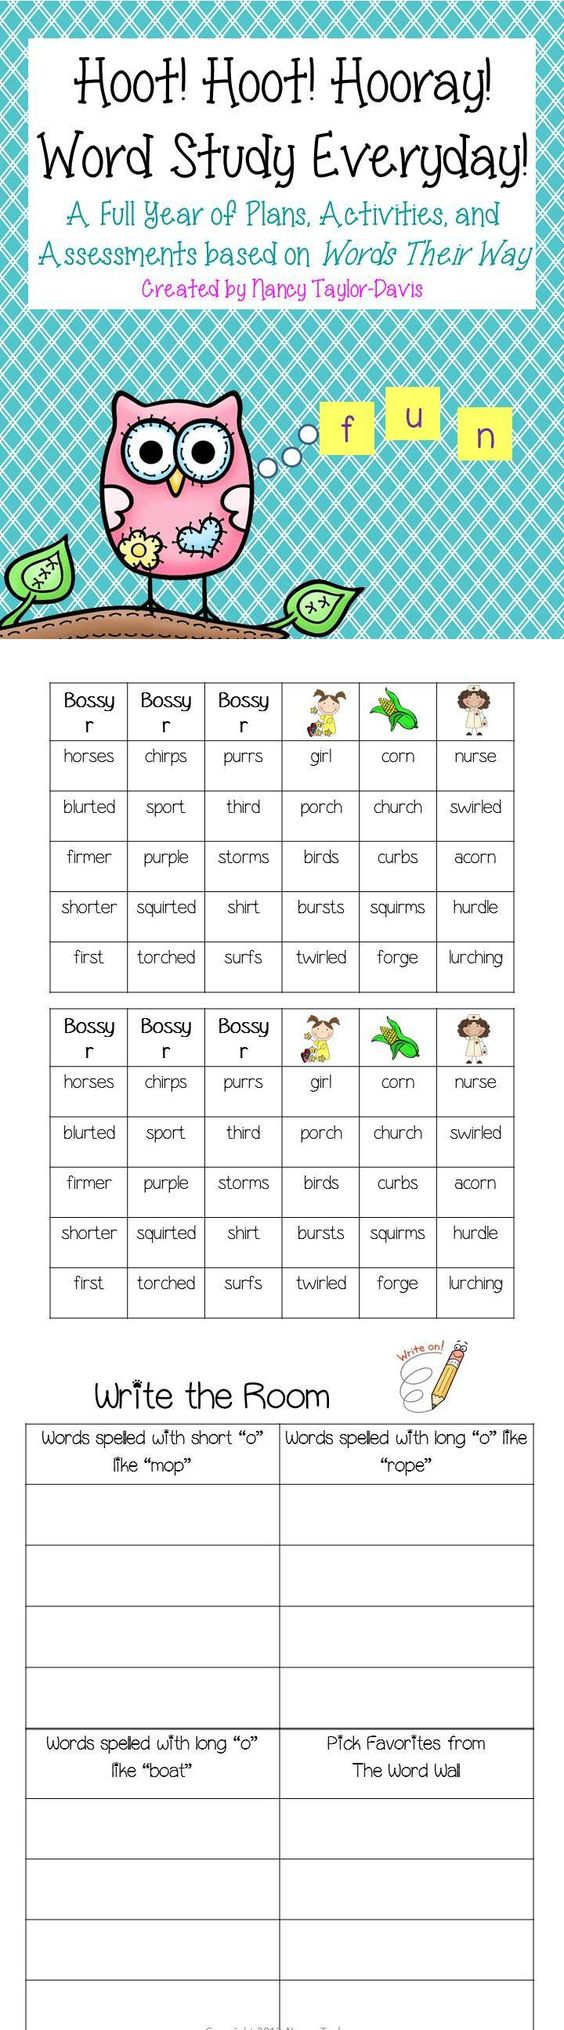 Writing Word Taylor ~ Hoot hooray words their way activities pictures